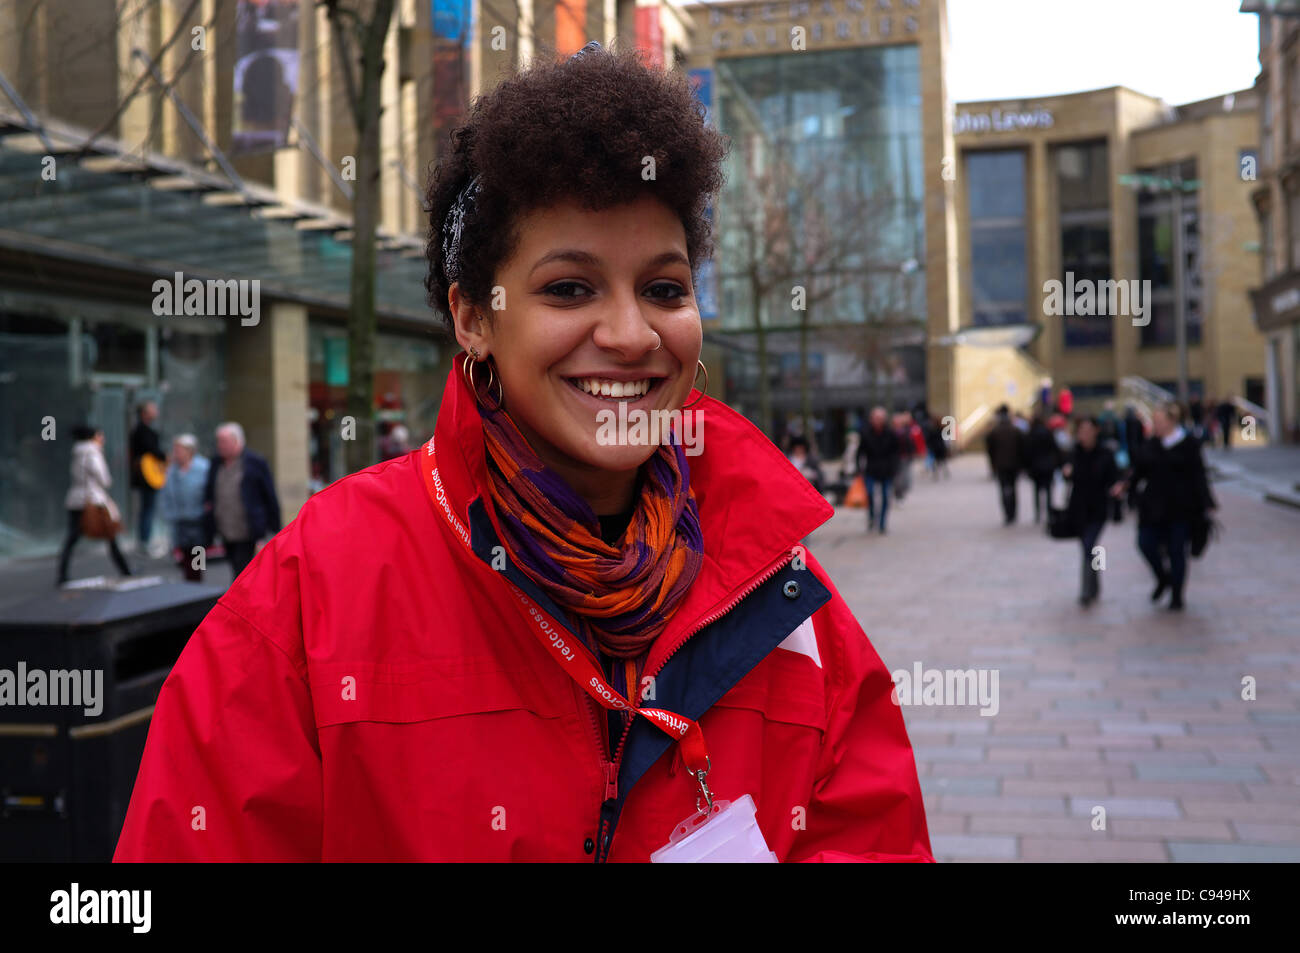 Young woman acting as a Street canvasser for the British Red Cross Charity in Sauchiehall Street, Glasgow - Stock Image